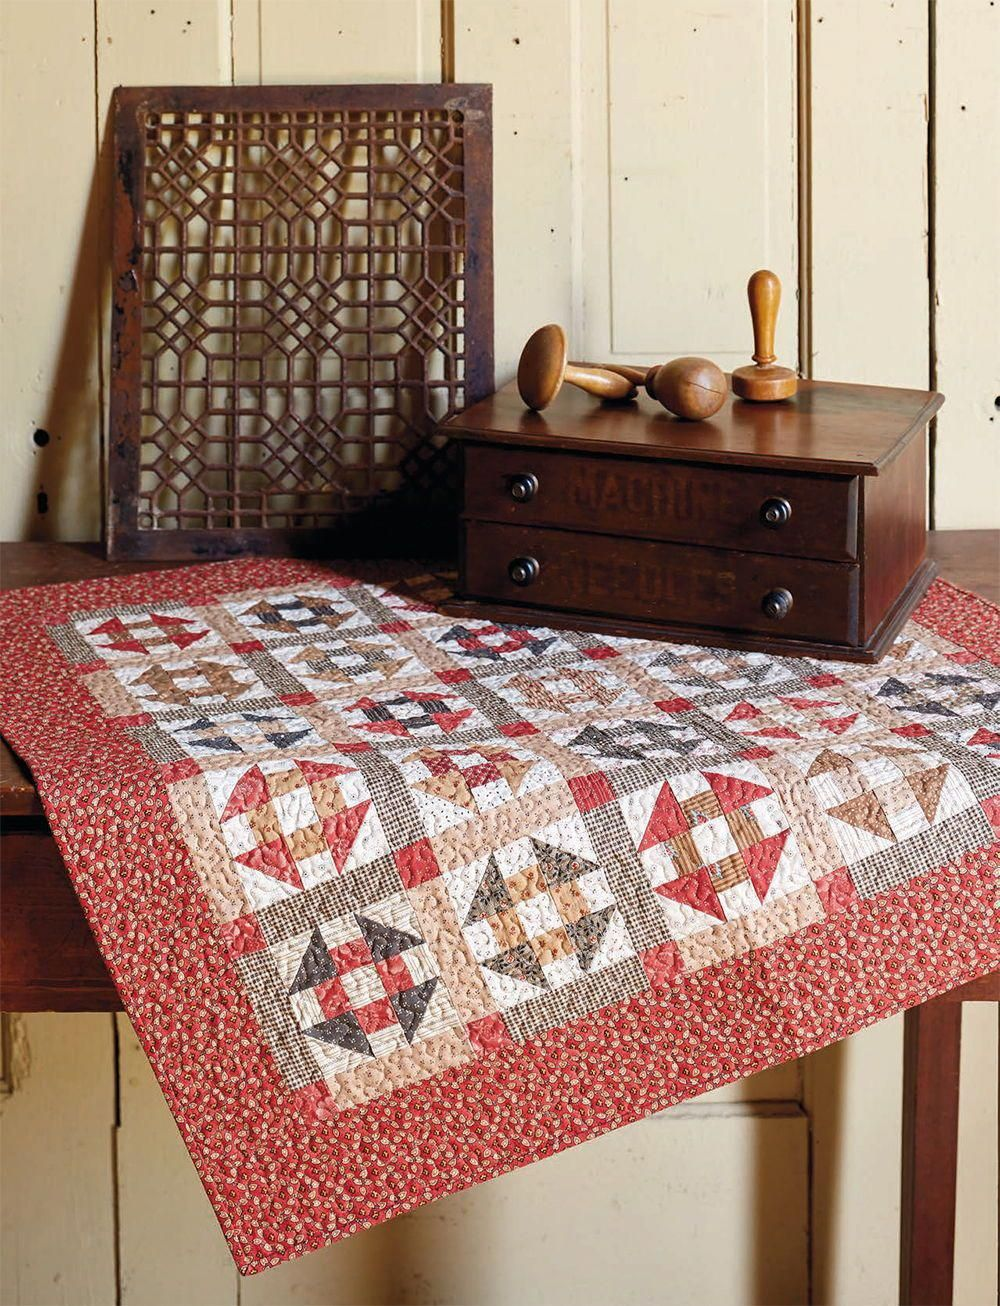 Pin by Joulene Botha on Oh how I love quilting Churn